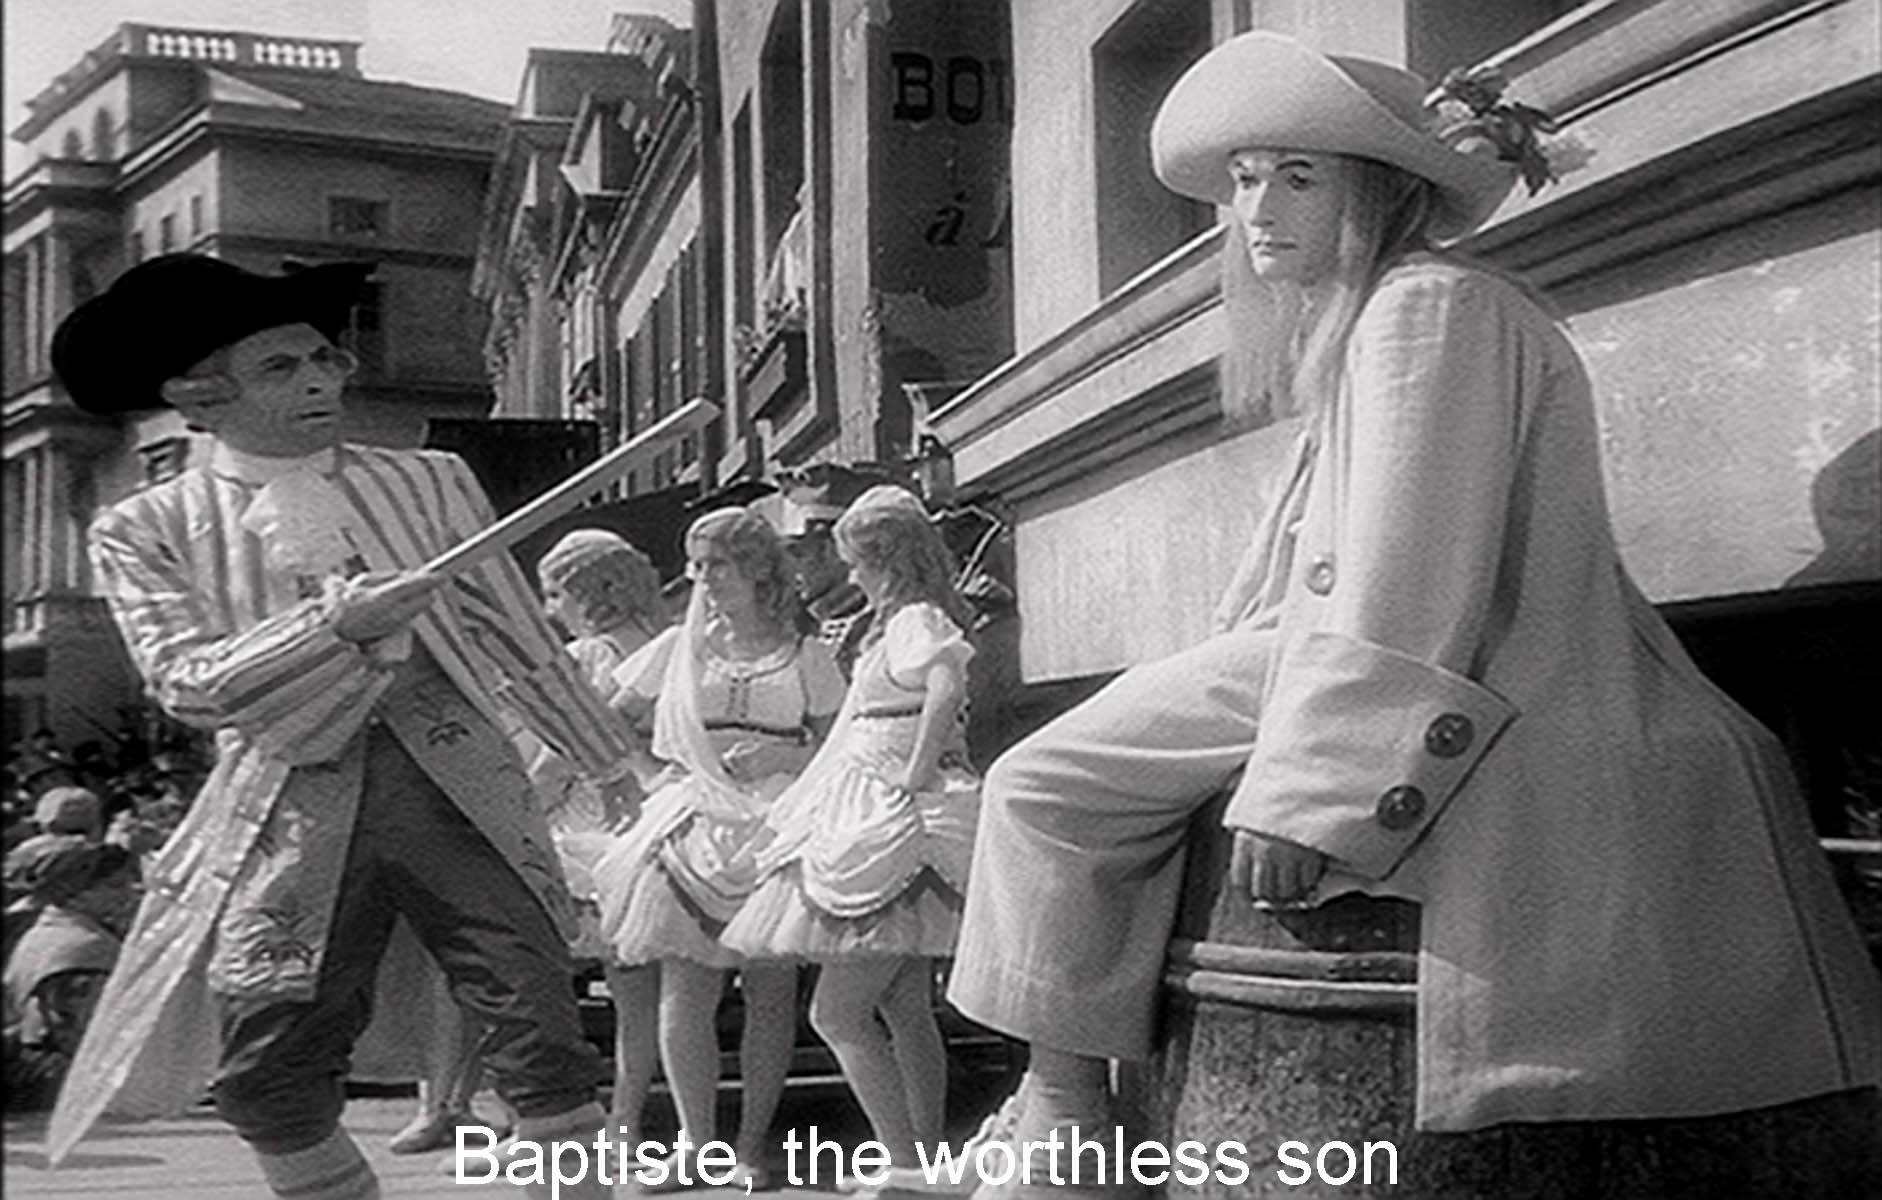 Baptiste: the worthless son